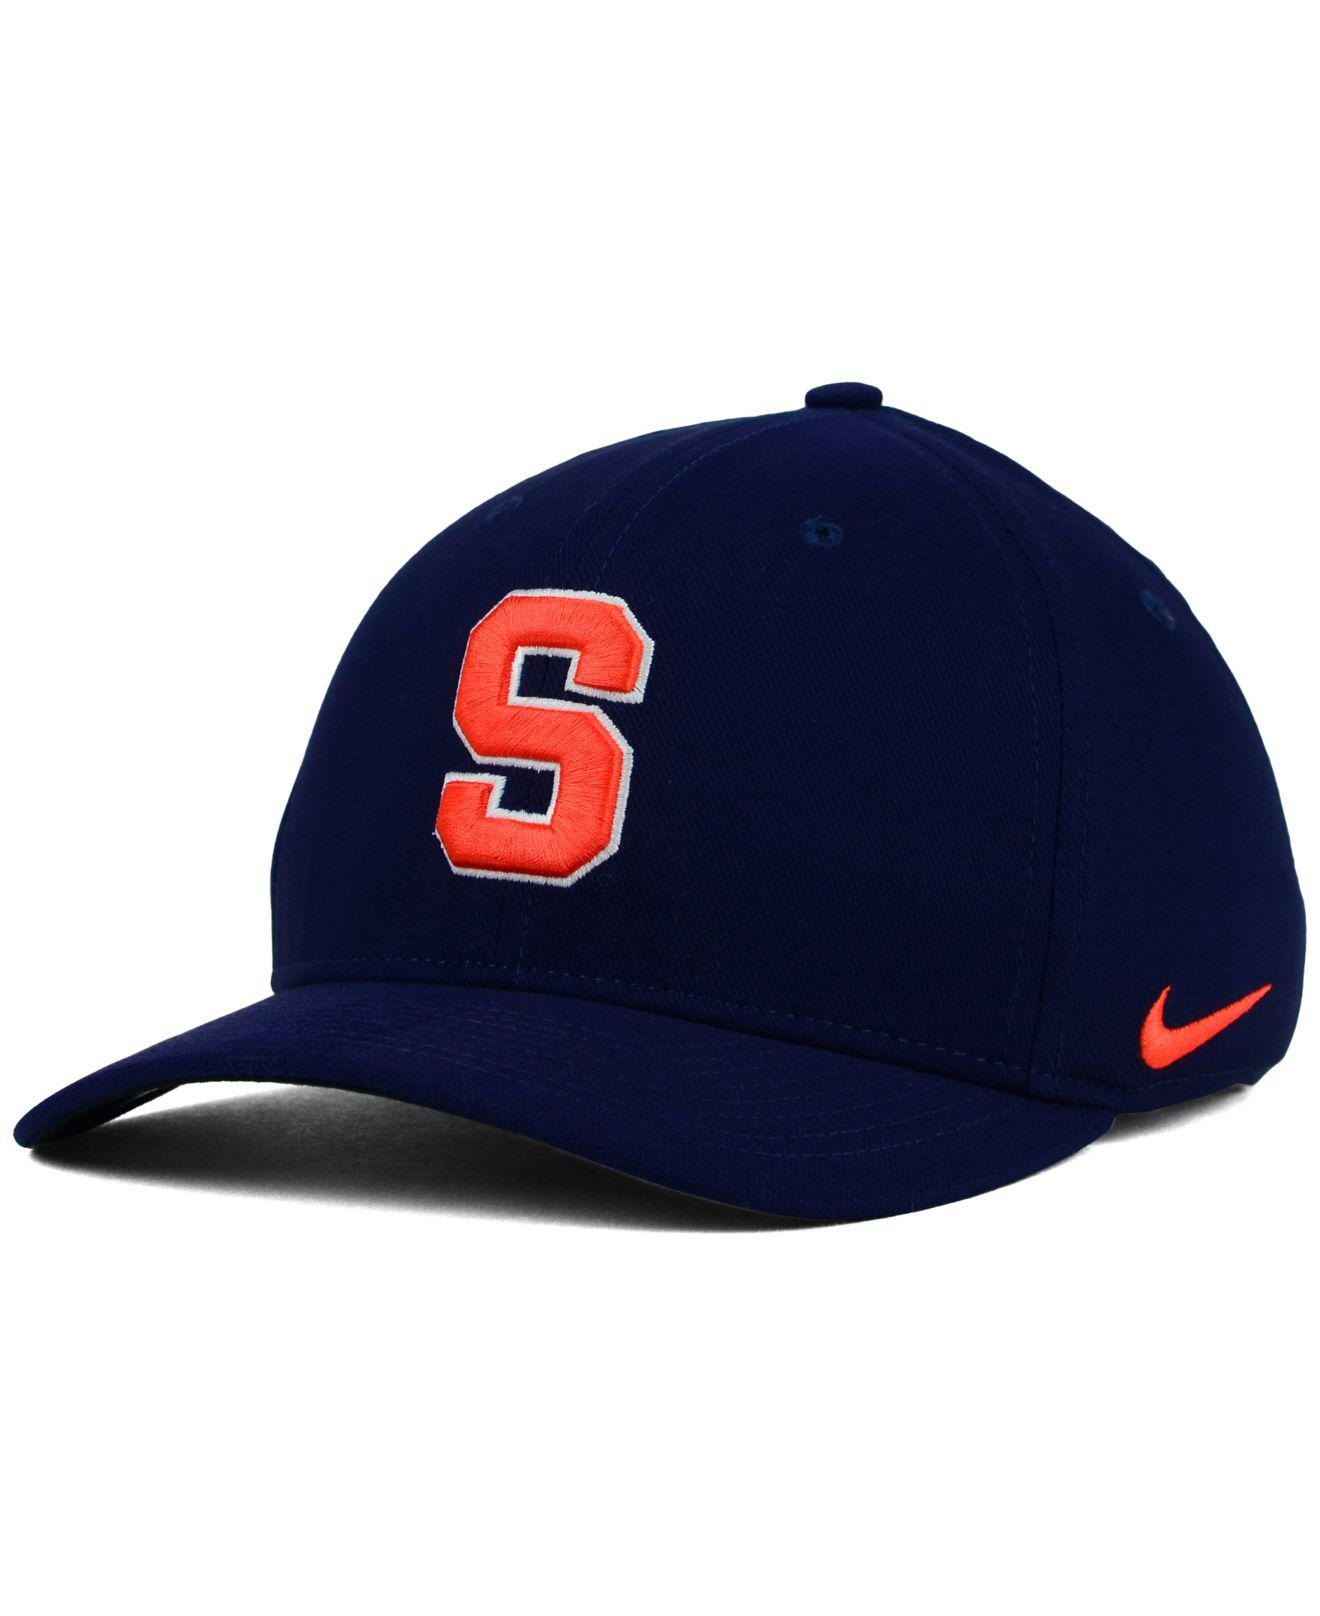 86ec5d7121b sale syracuse nike lacrosse hat sold bb809 03c3f  hot lyst nike syracuse  orange classic swoosh cap in blue for men 8d8f8 070d1